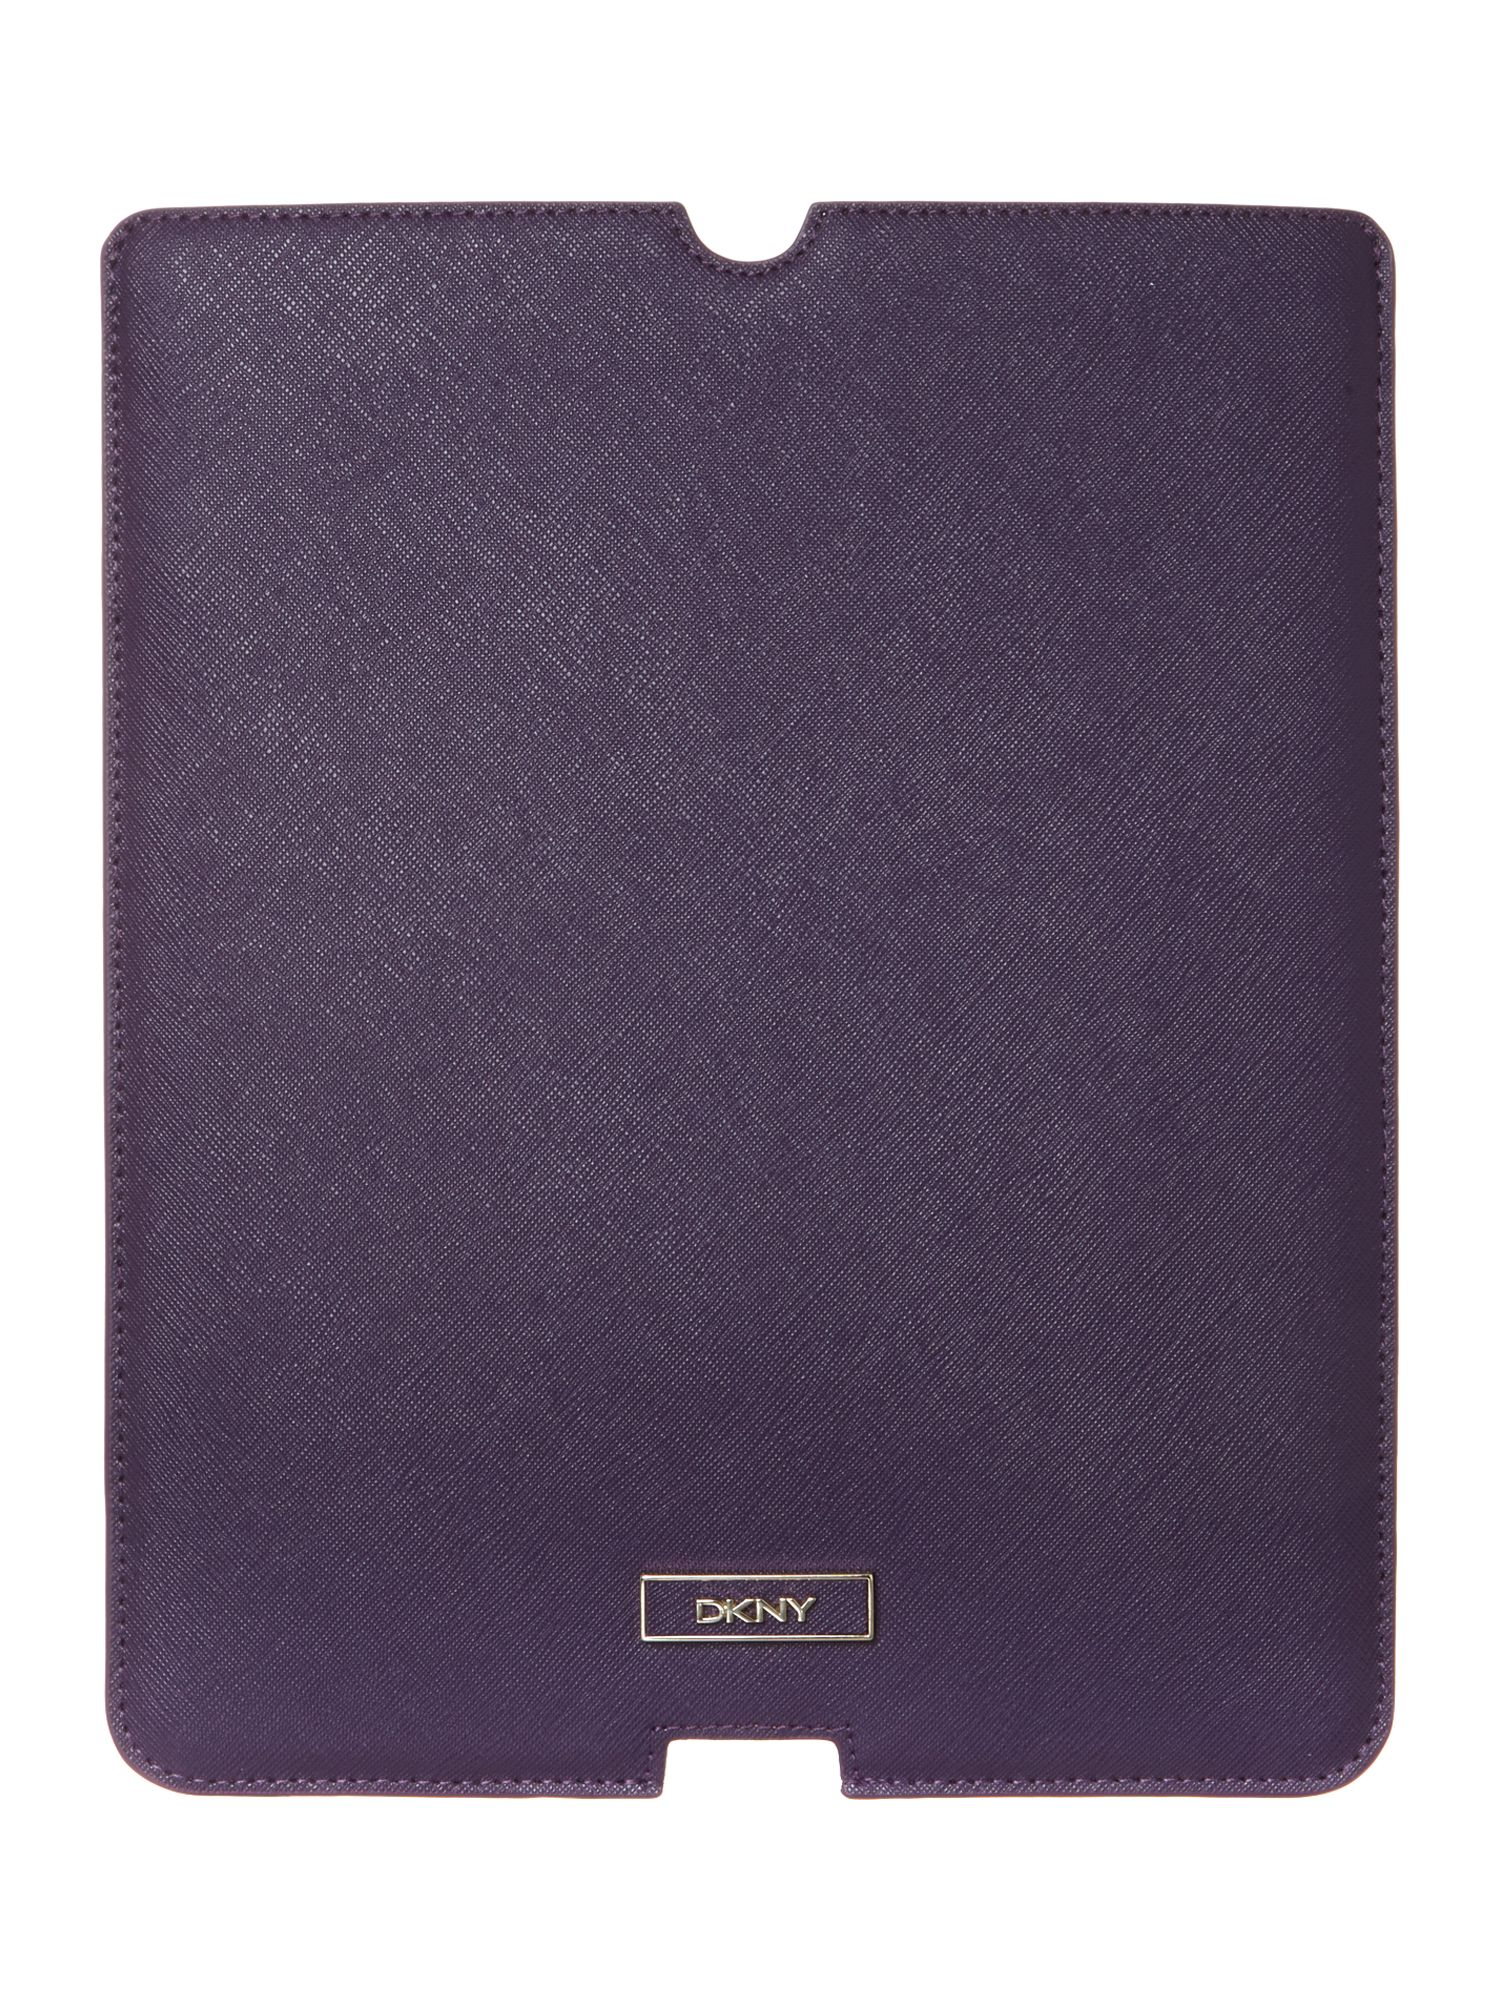 Saffiano purple Ipad cover